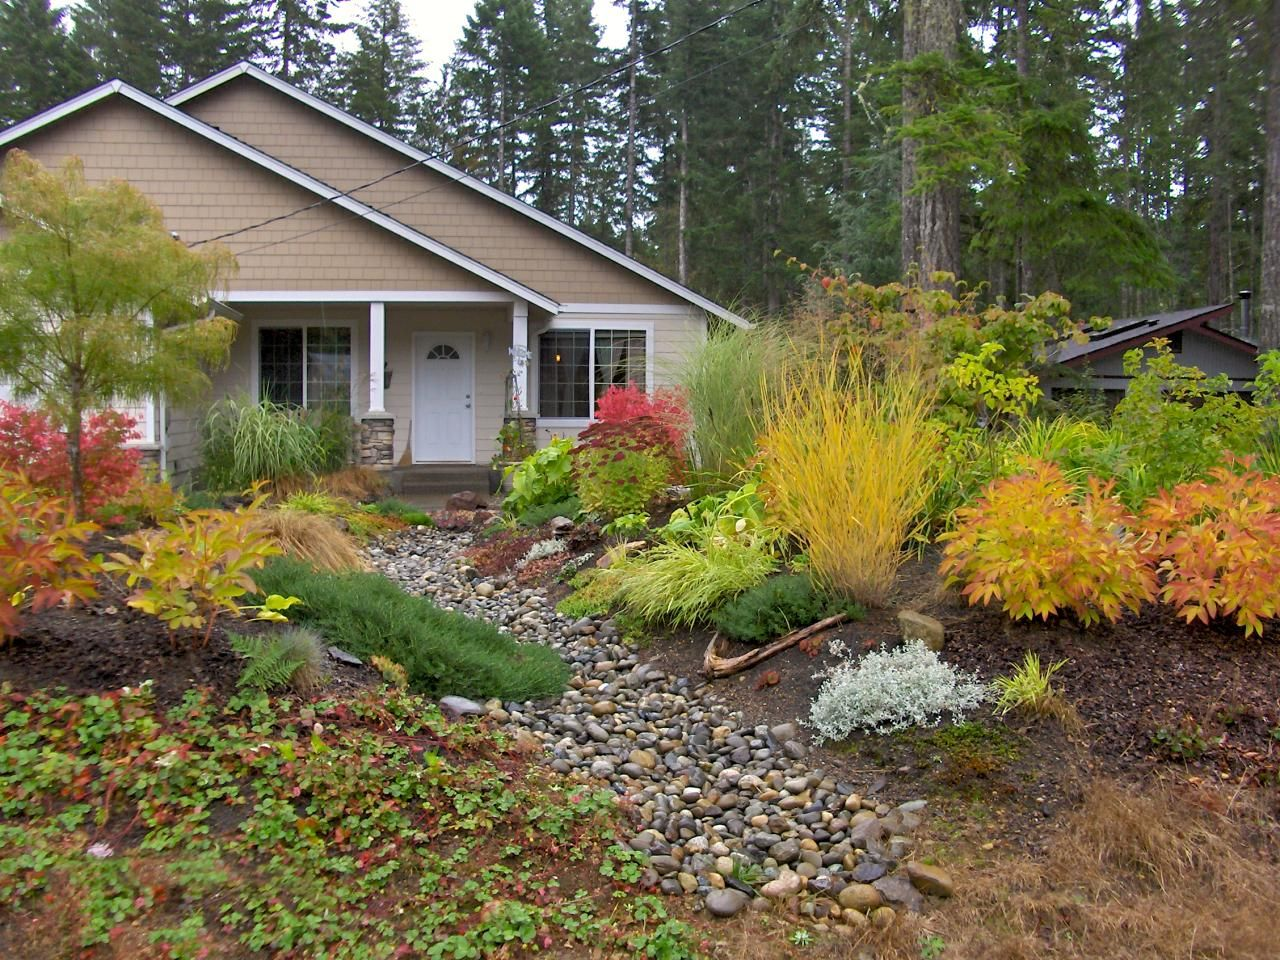 Awesome Fall Landscaping Ideas Front Yard Part - 6: Amazing Color For The Fall Landscape | Landscaping Ideas And Hardscape  Design | HGTV. No Grass LandscapingFront Yard ...